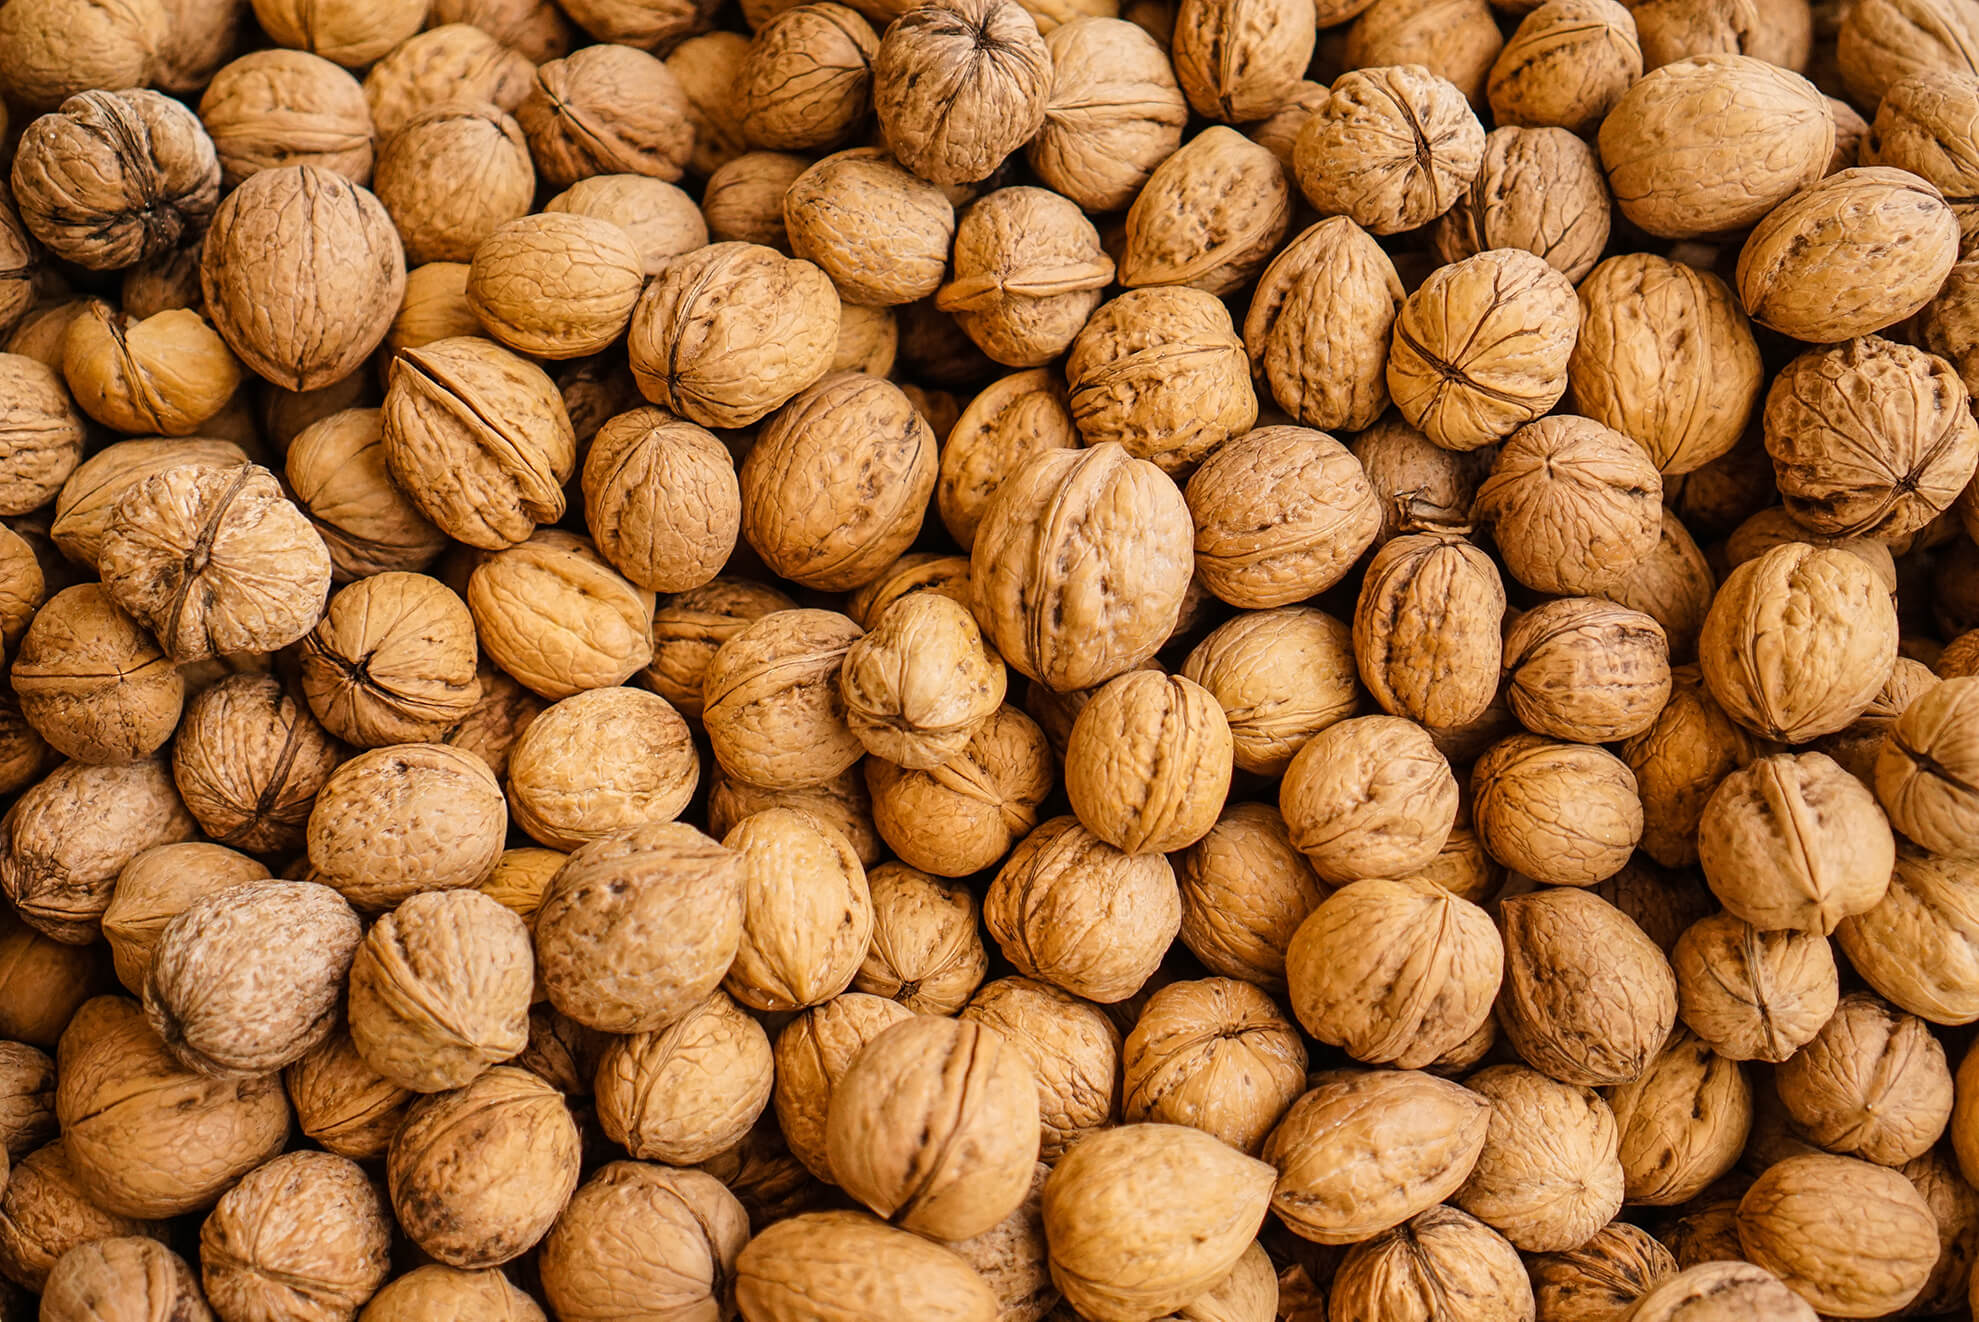 Walnuts which are full of polyphenols